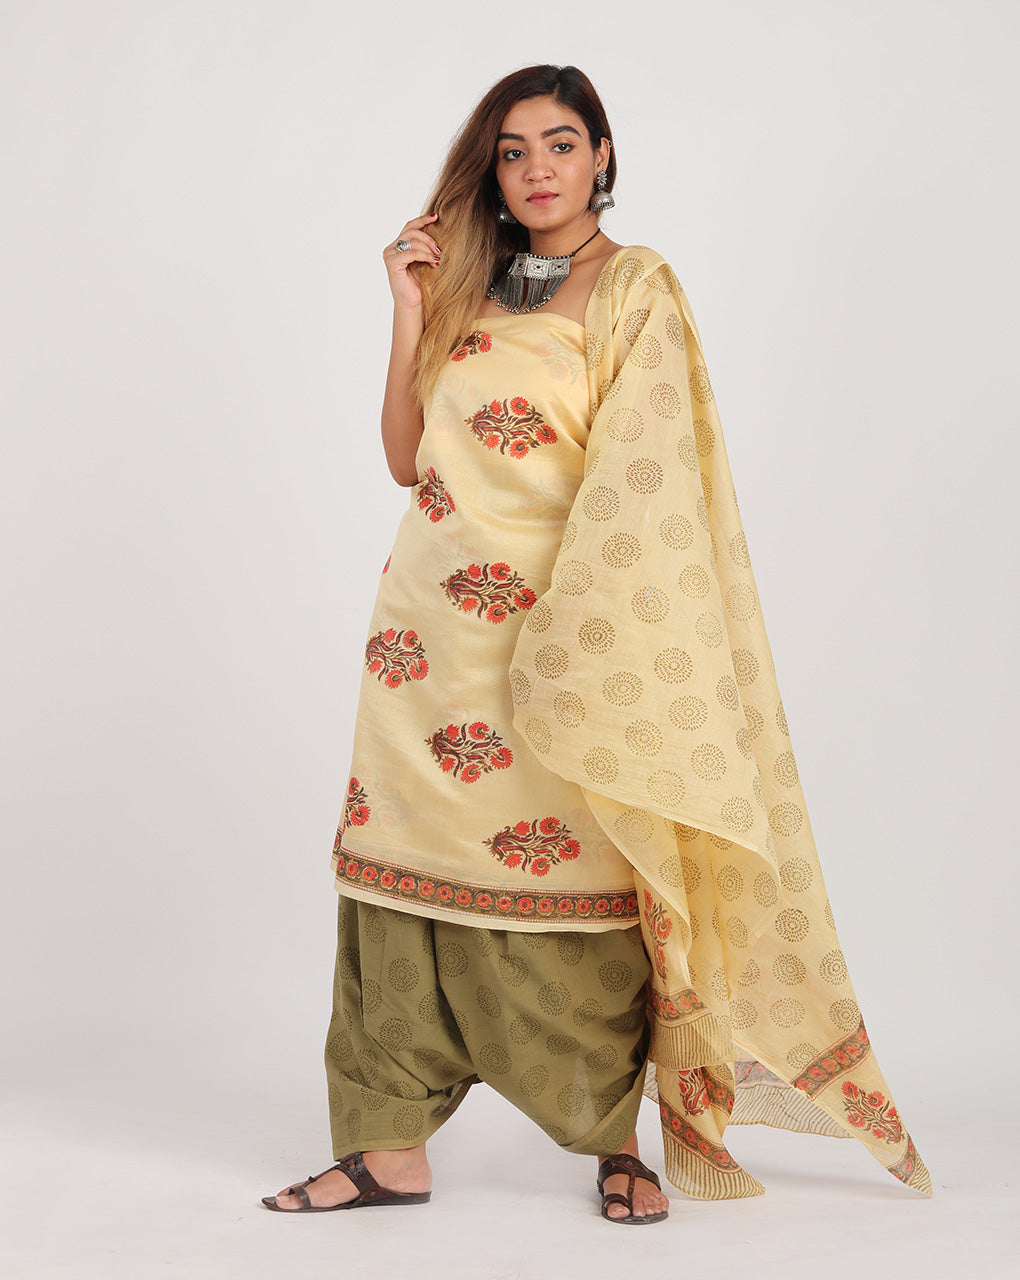 Beige & Red Floral Hand Block Chanderi Silk Unstitched Suit With Border - Fabriclore.com